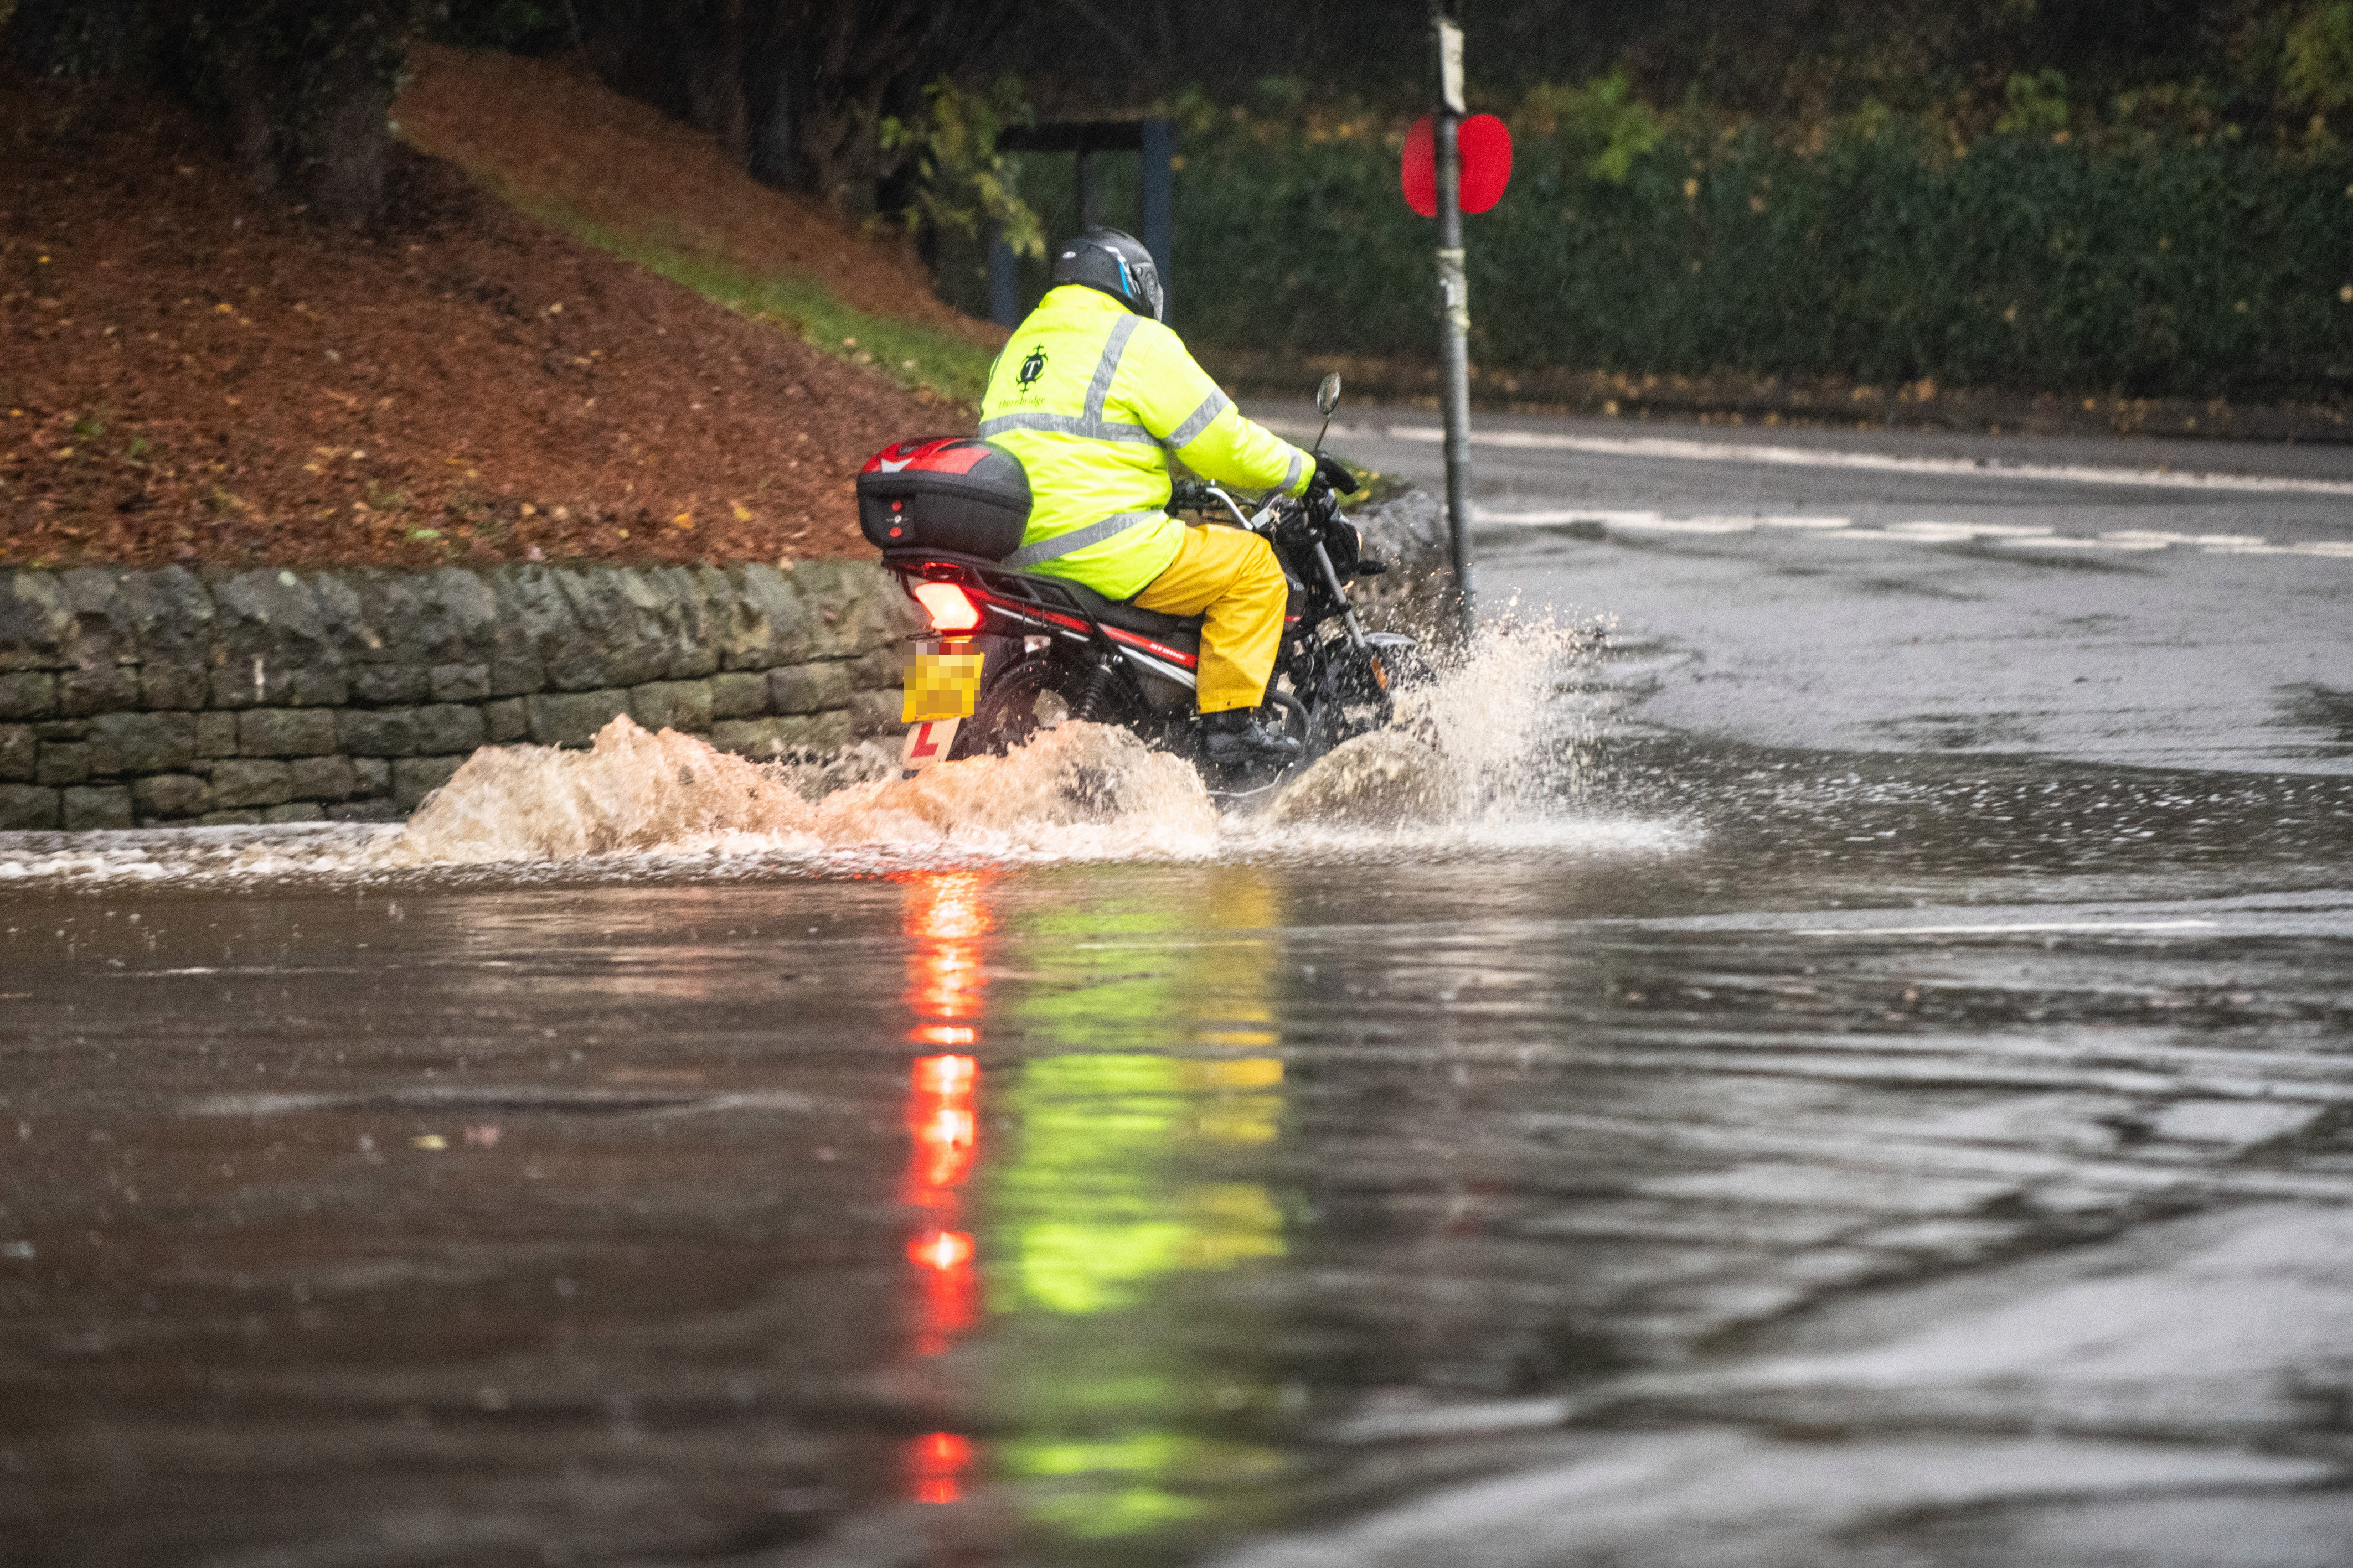 This motorcyclist was prepared for the floods near the Derbyshire village of Bubnell